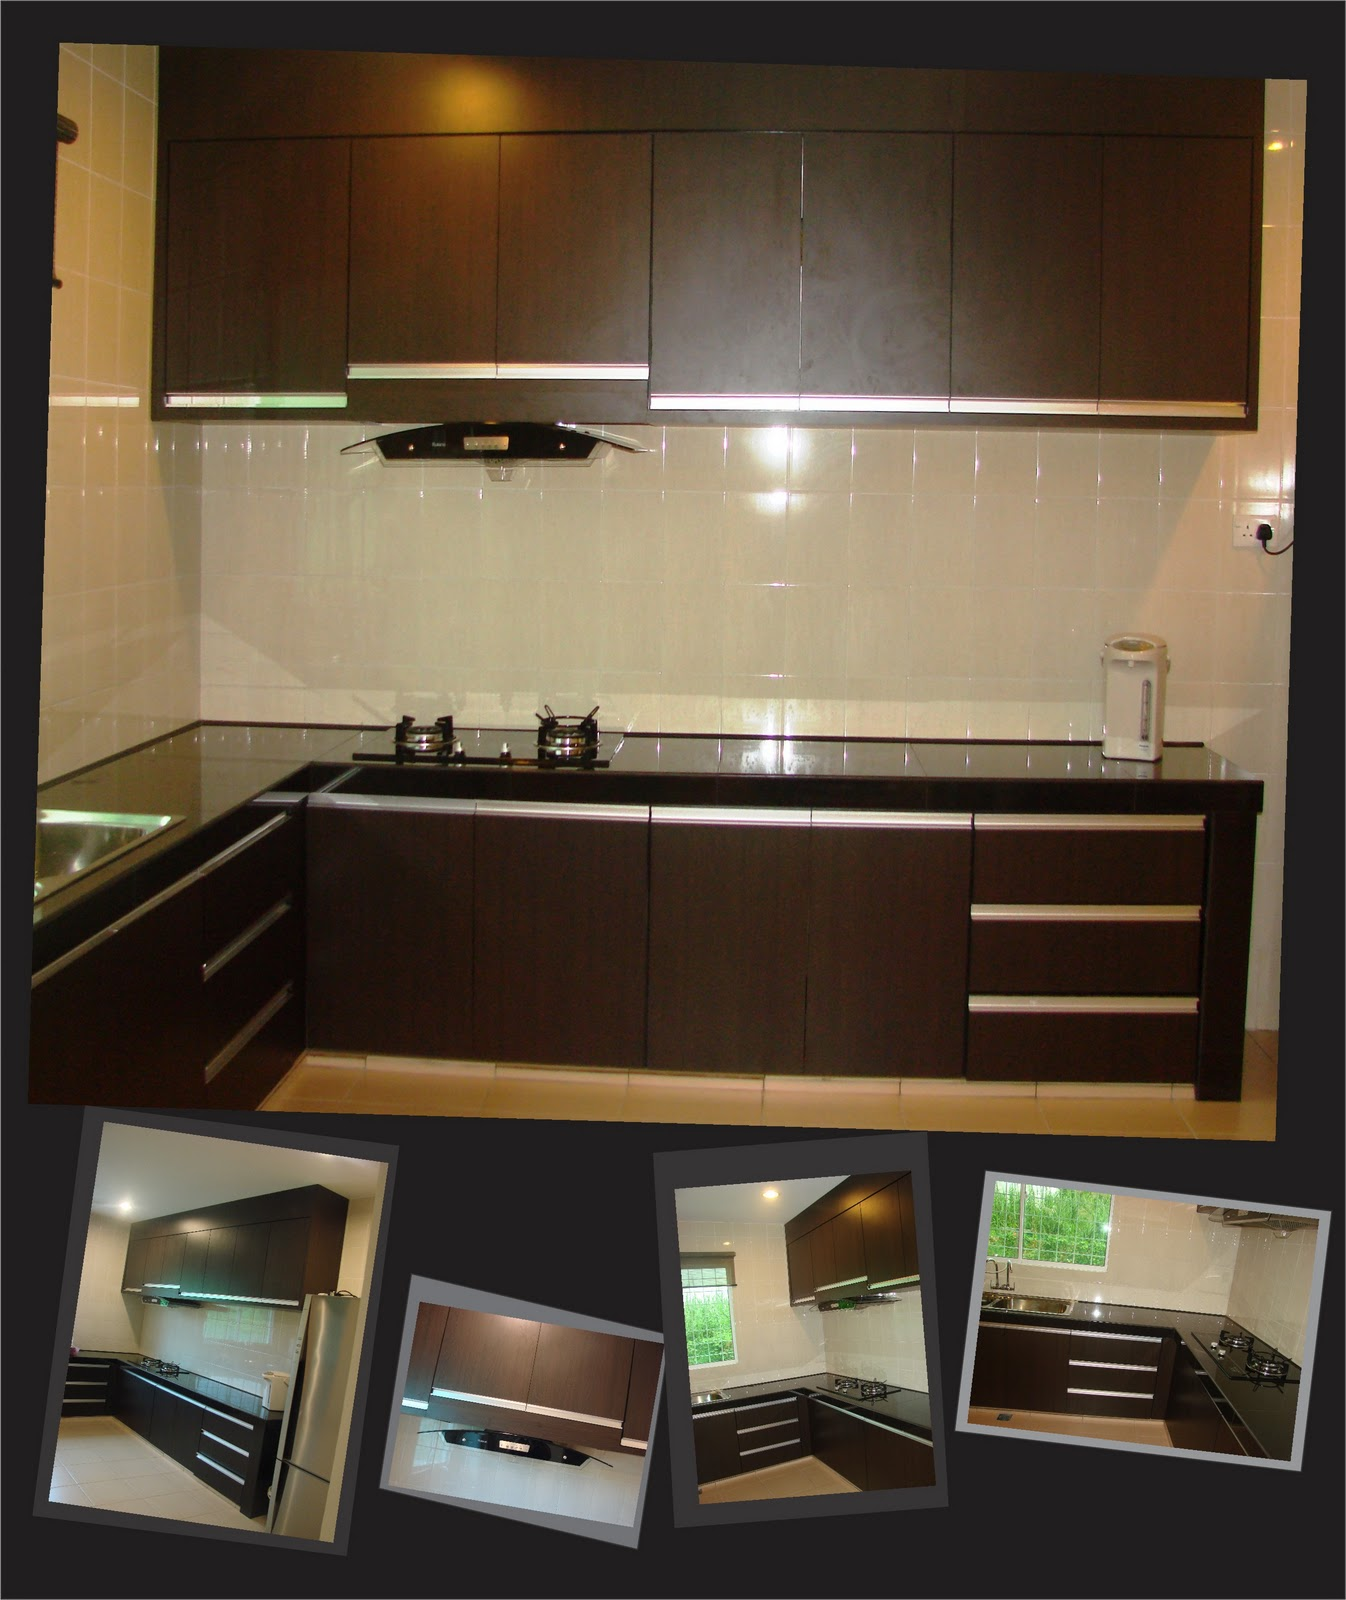 Kitchen Cabinets with Dark Wood Grain